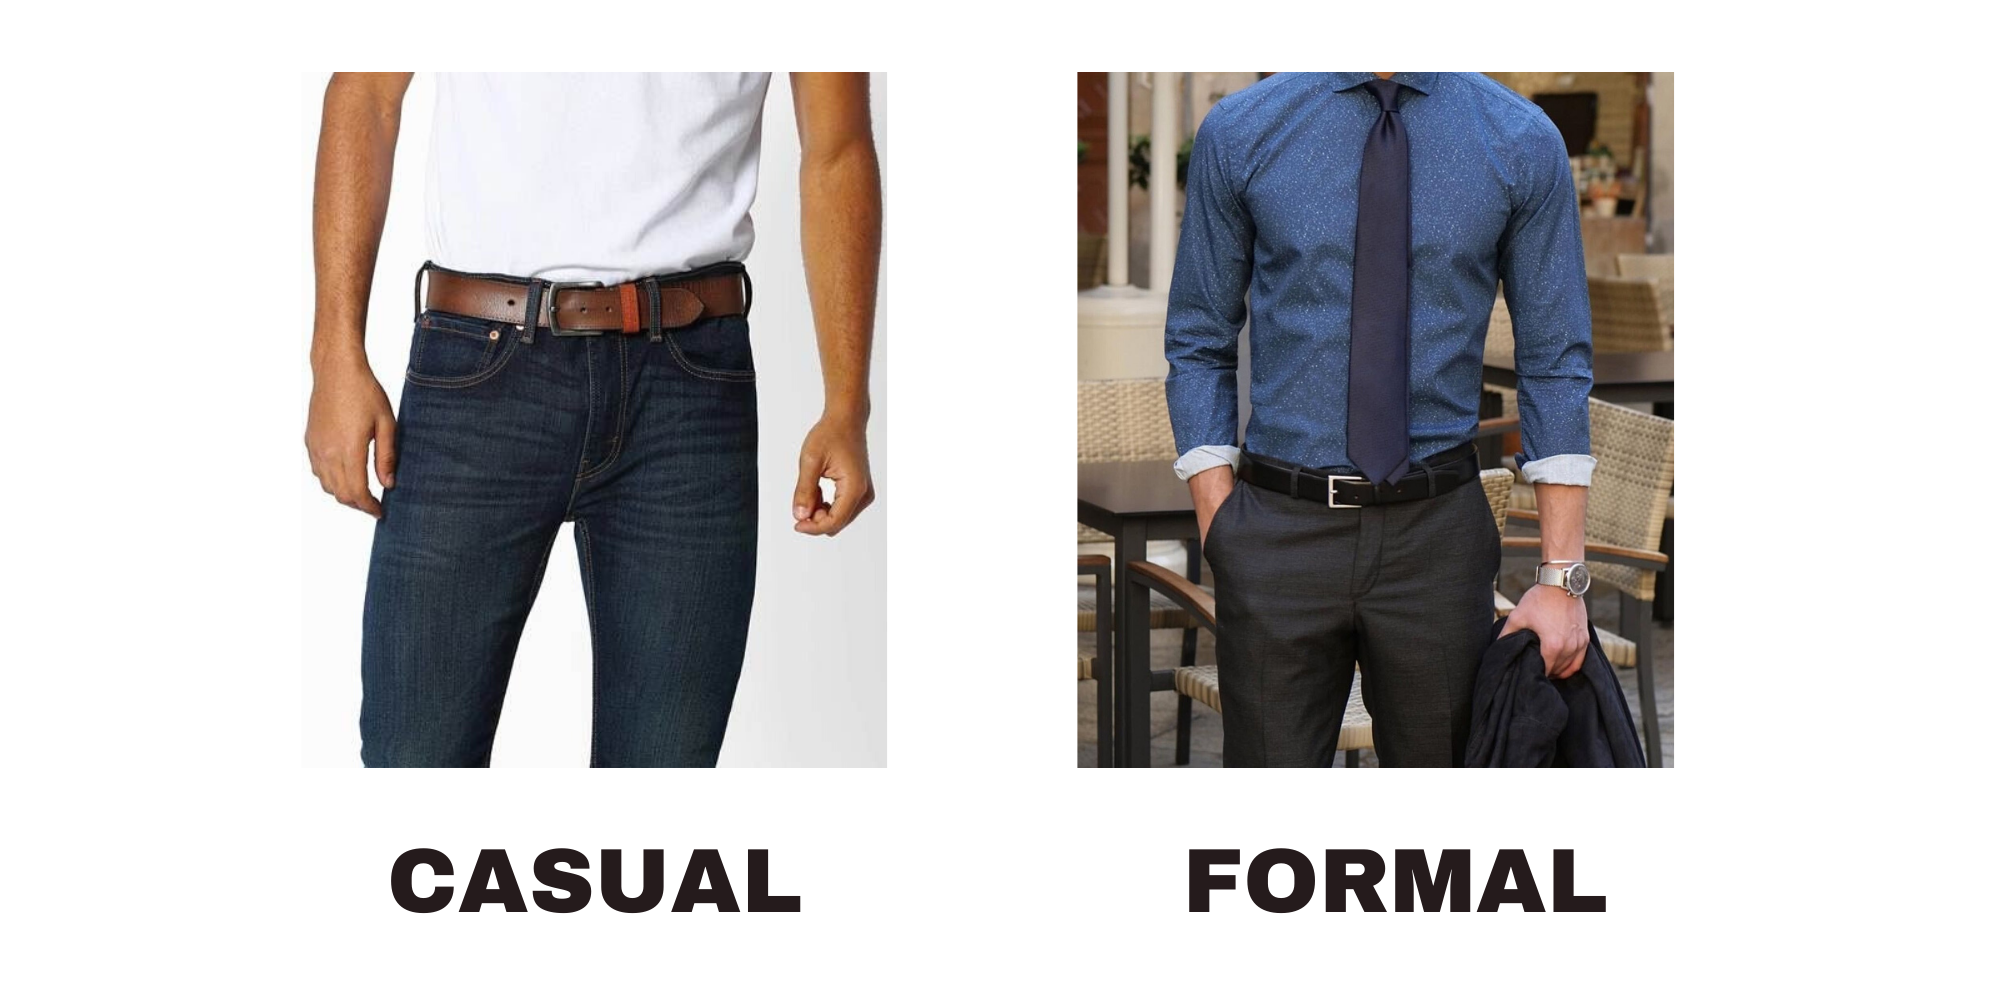 Comparing casual leather belt fashion with formal leather belt fashion